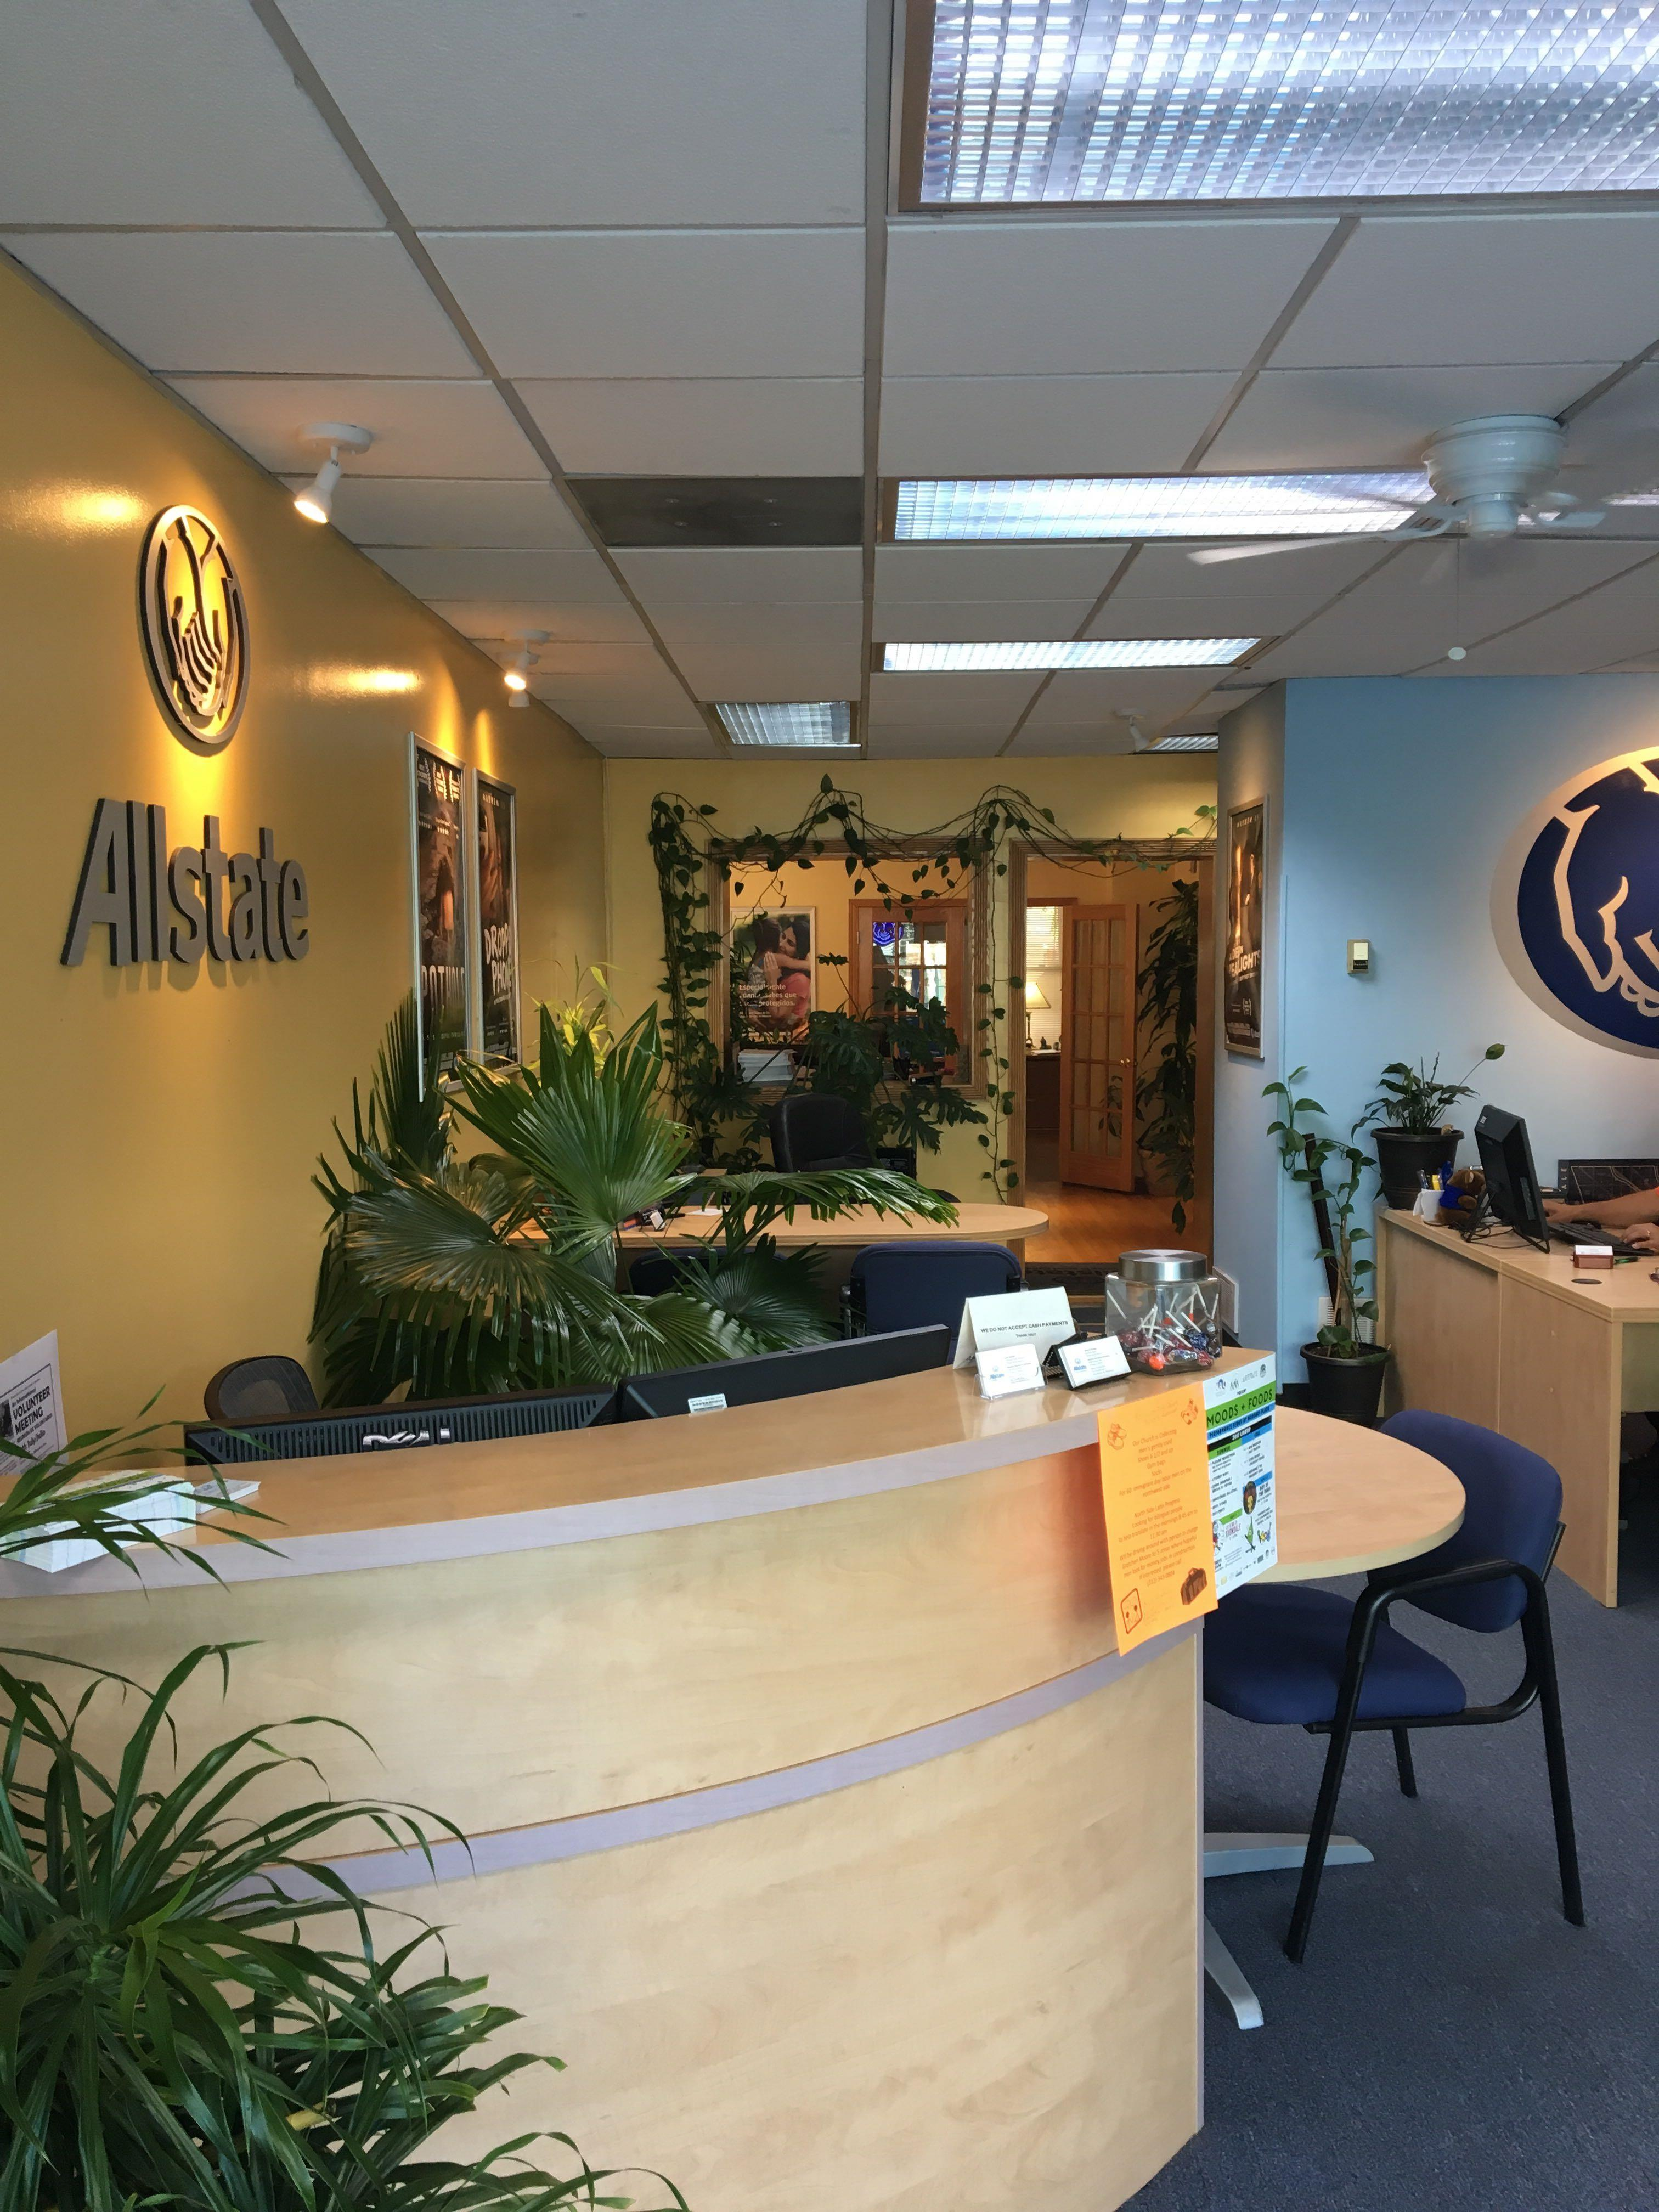 Allstate Insurance Agent: Ortega Family Agency